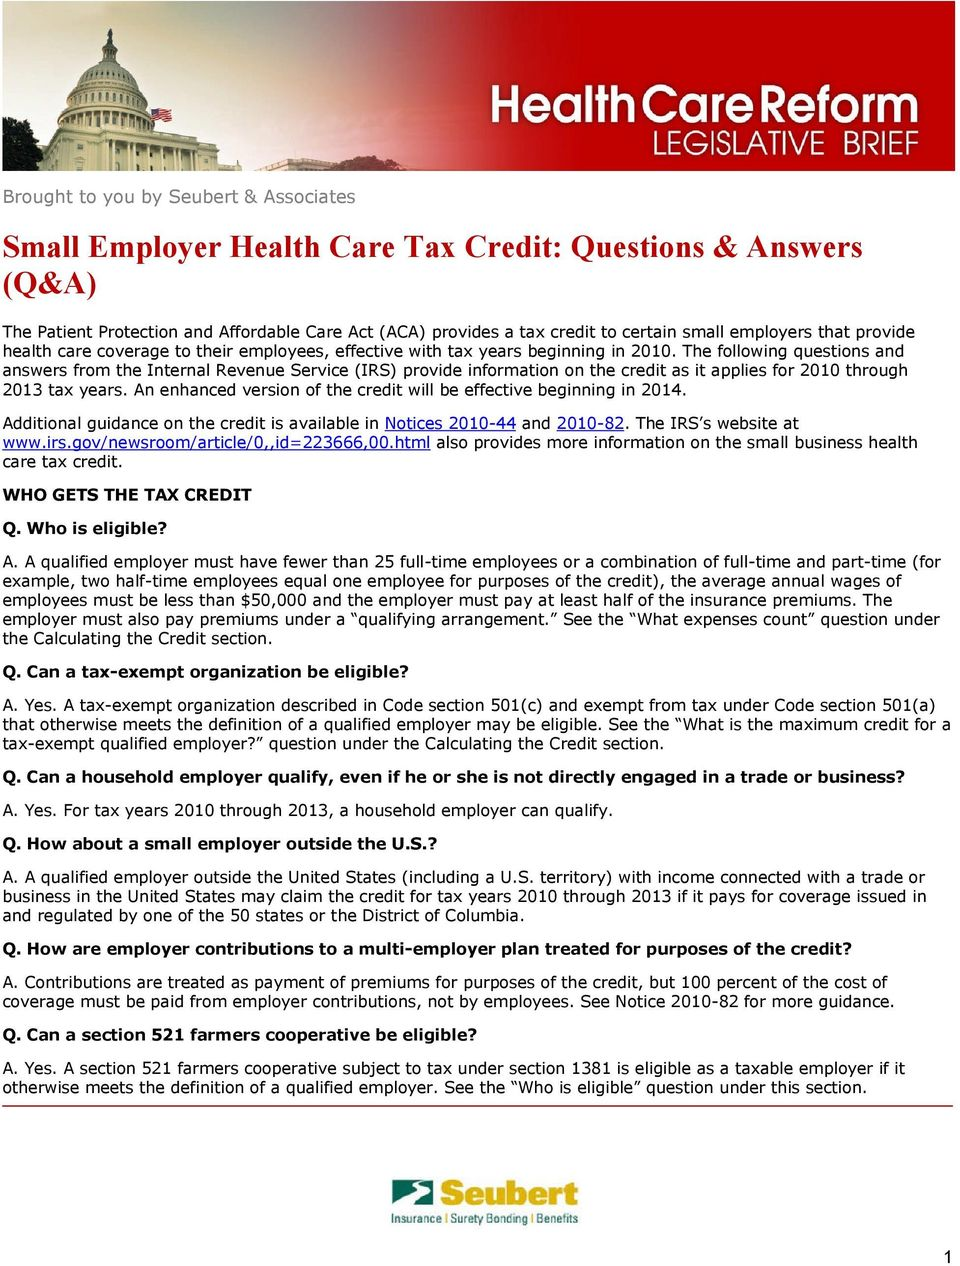 The following questions and answers from the Internal Revenue Service (IRS) provide information on the credit as it applies for 2010 through 2013 tax years.